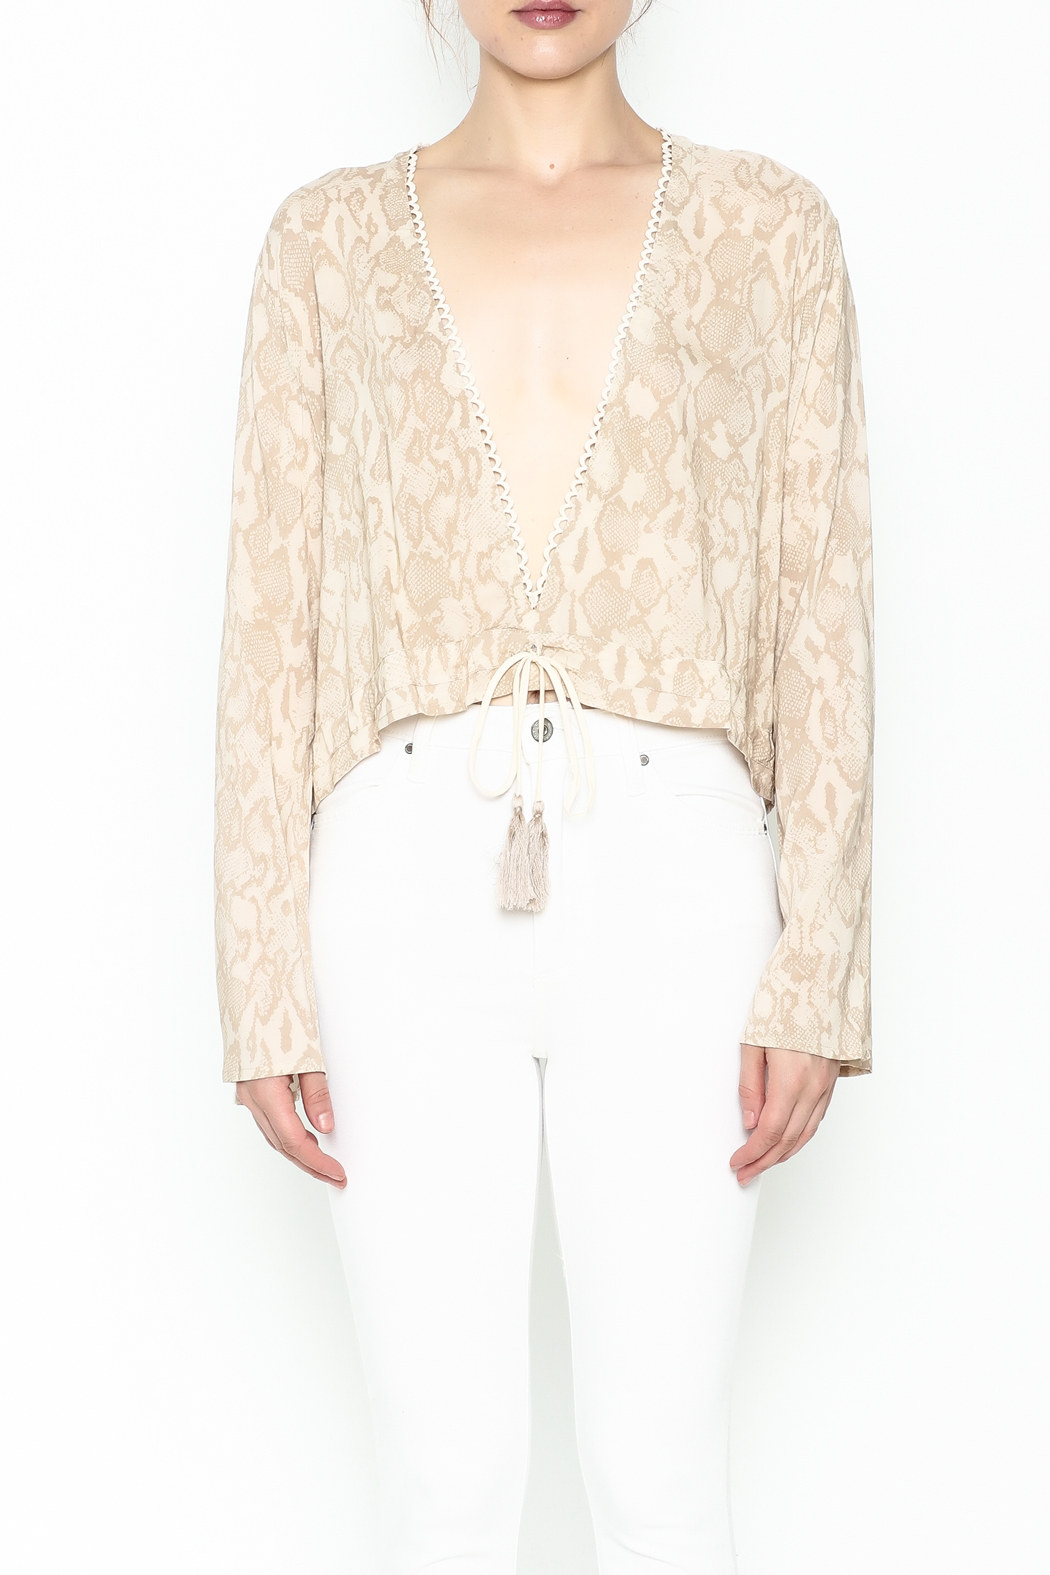 Olivaceous Python Plunge Top - Front Full Image